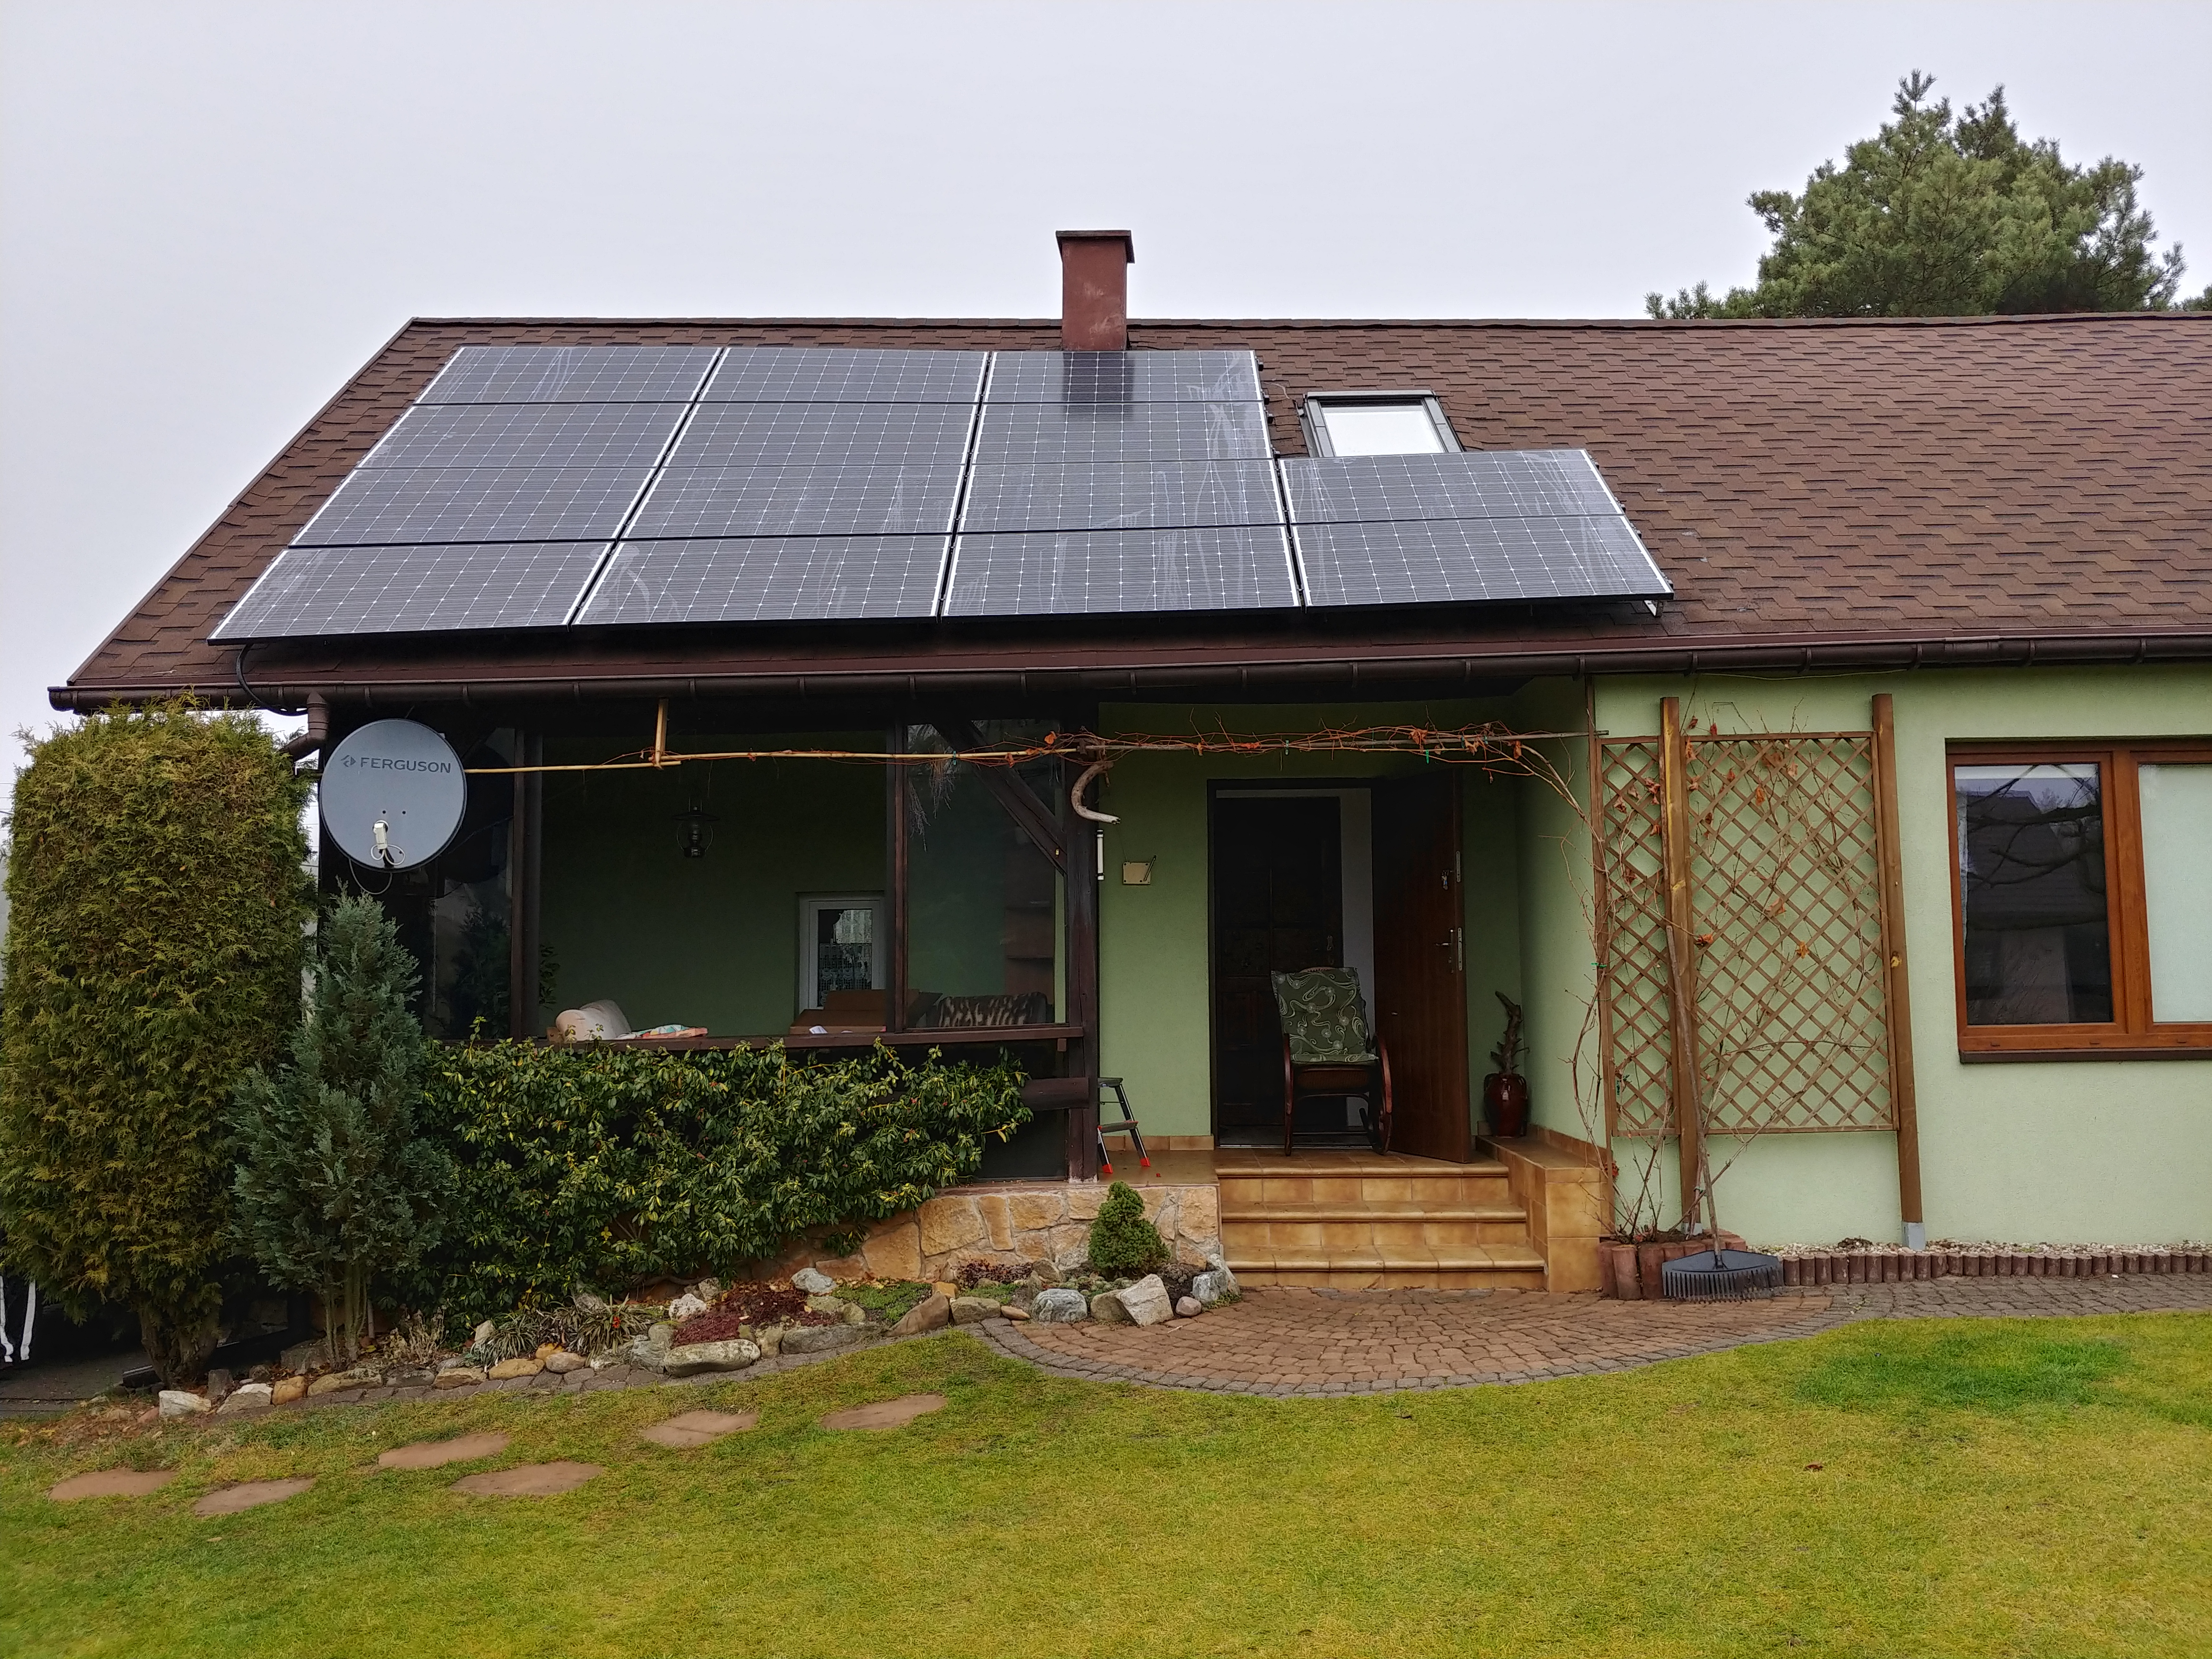 4.34 kWp installation mounted on the south side of a gable roof in Pilica.